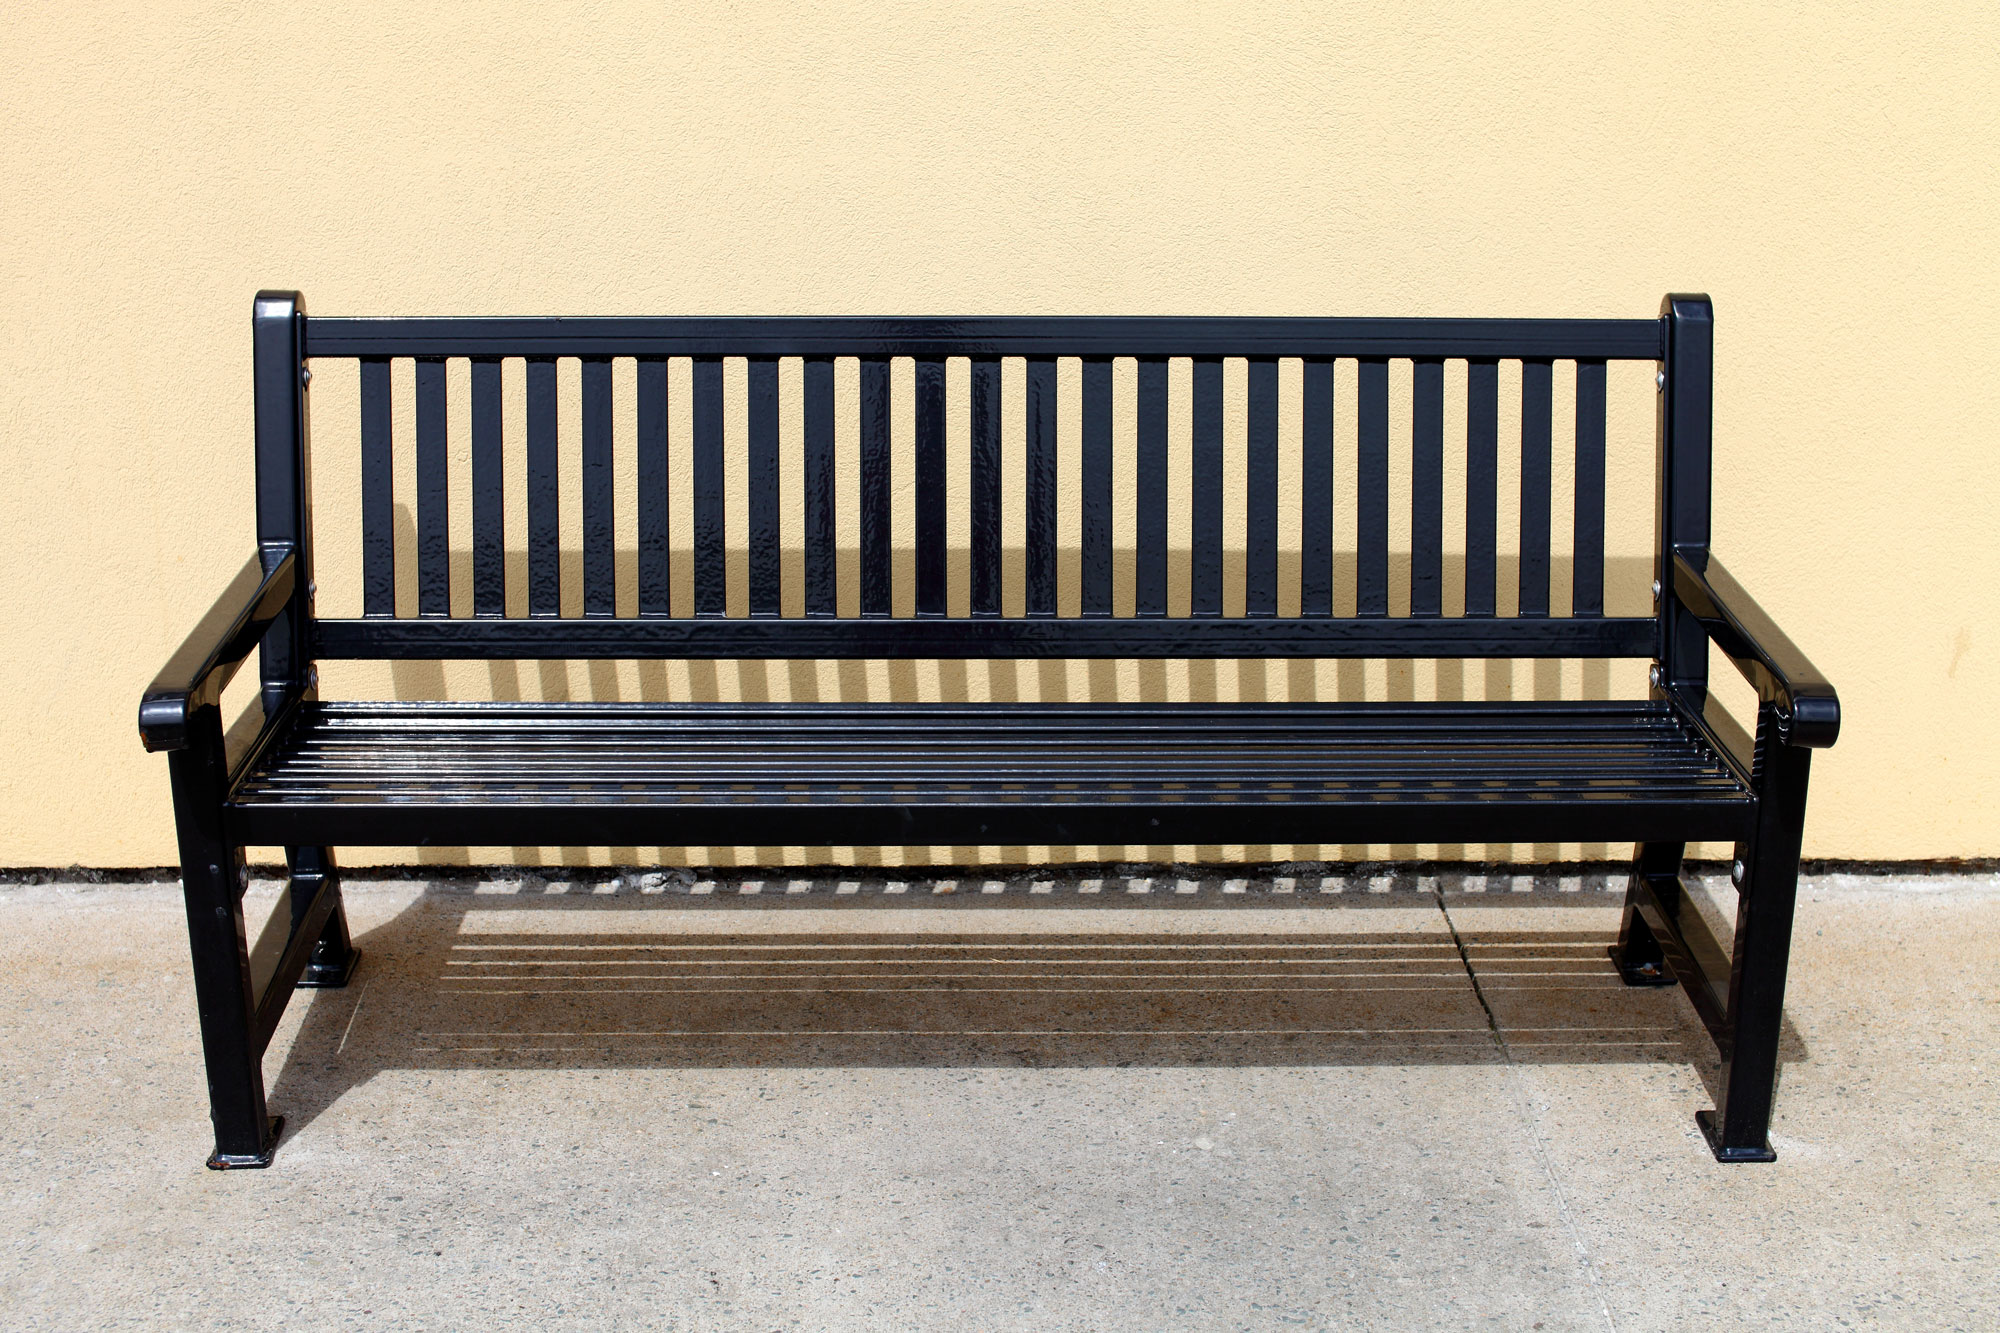 Black-Metal-Bench-2000x1333.jpg